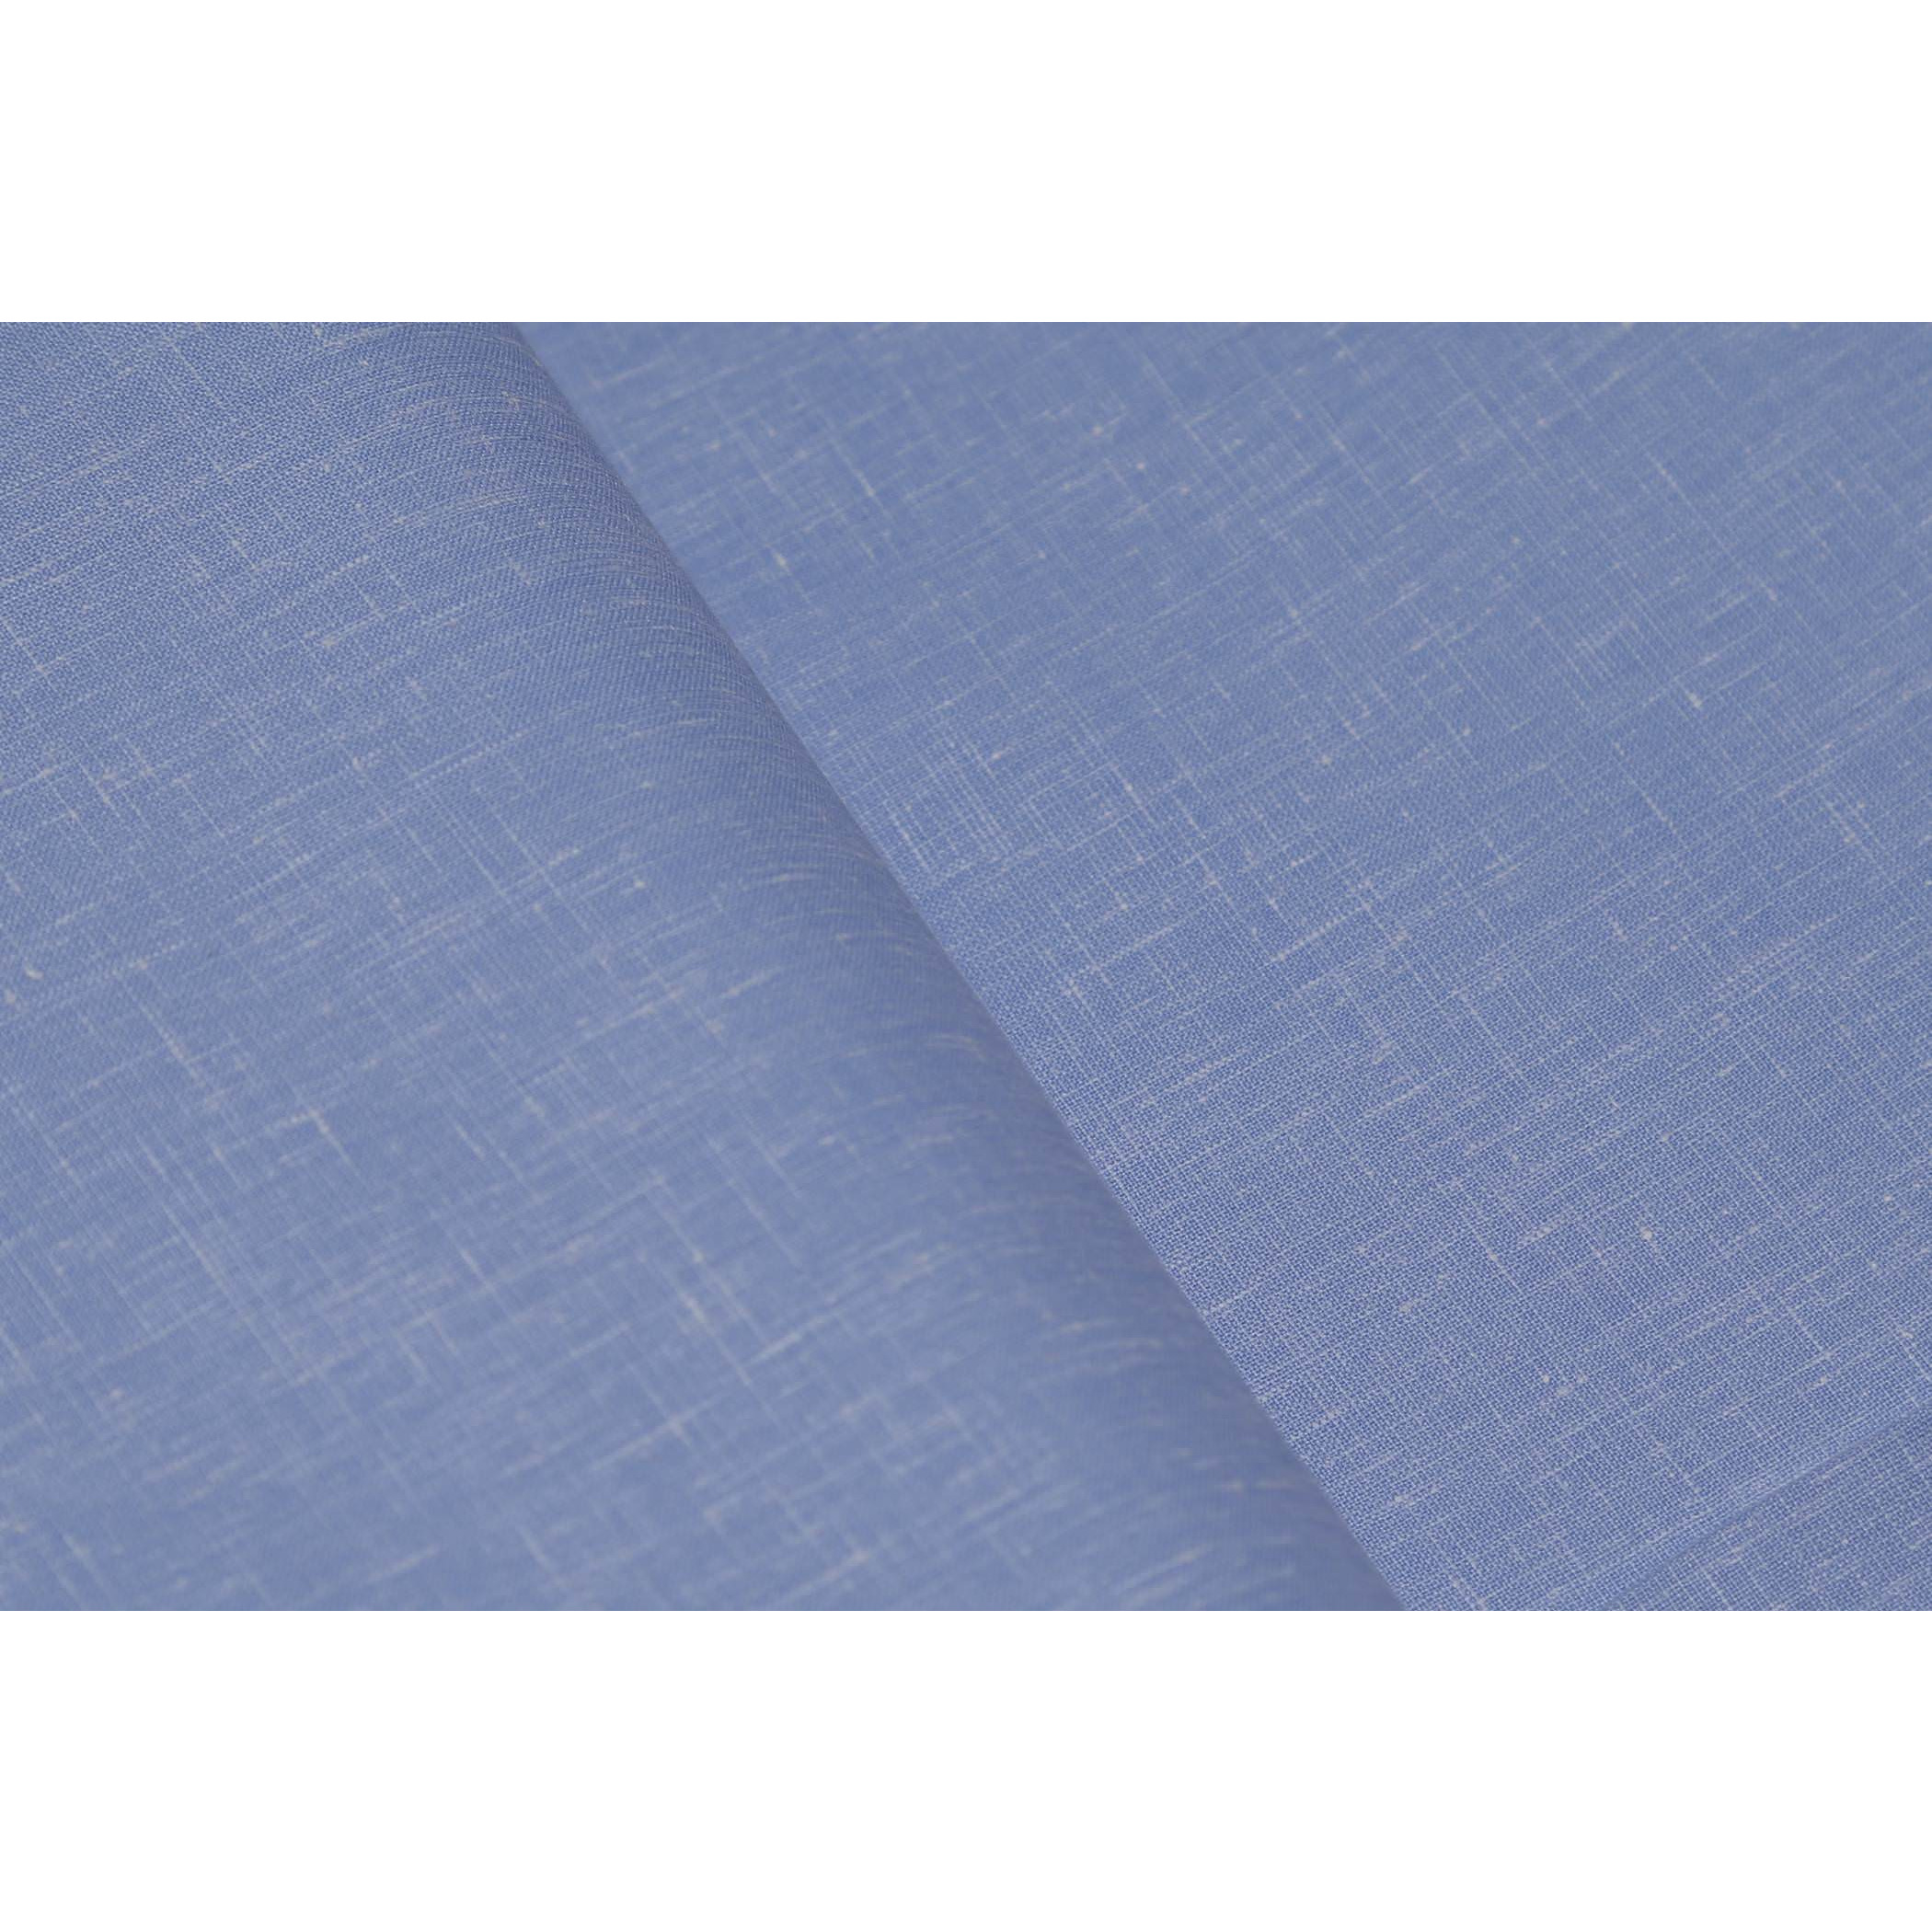 Sojanya (Since 1958)B 2.25 Metres Cotton Blend Shirt Fabric Solid Fine Quality